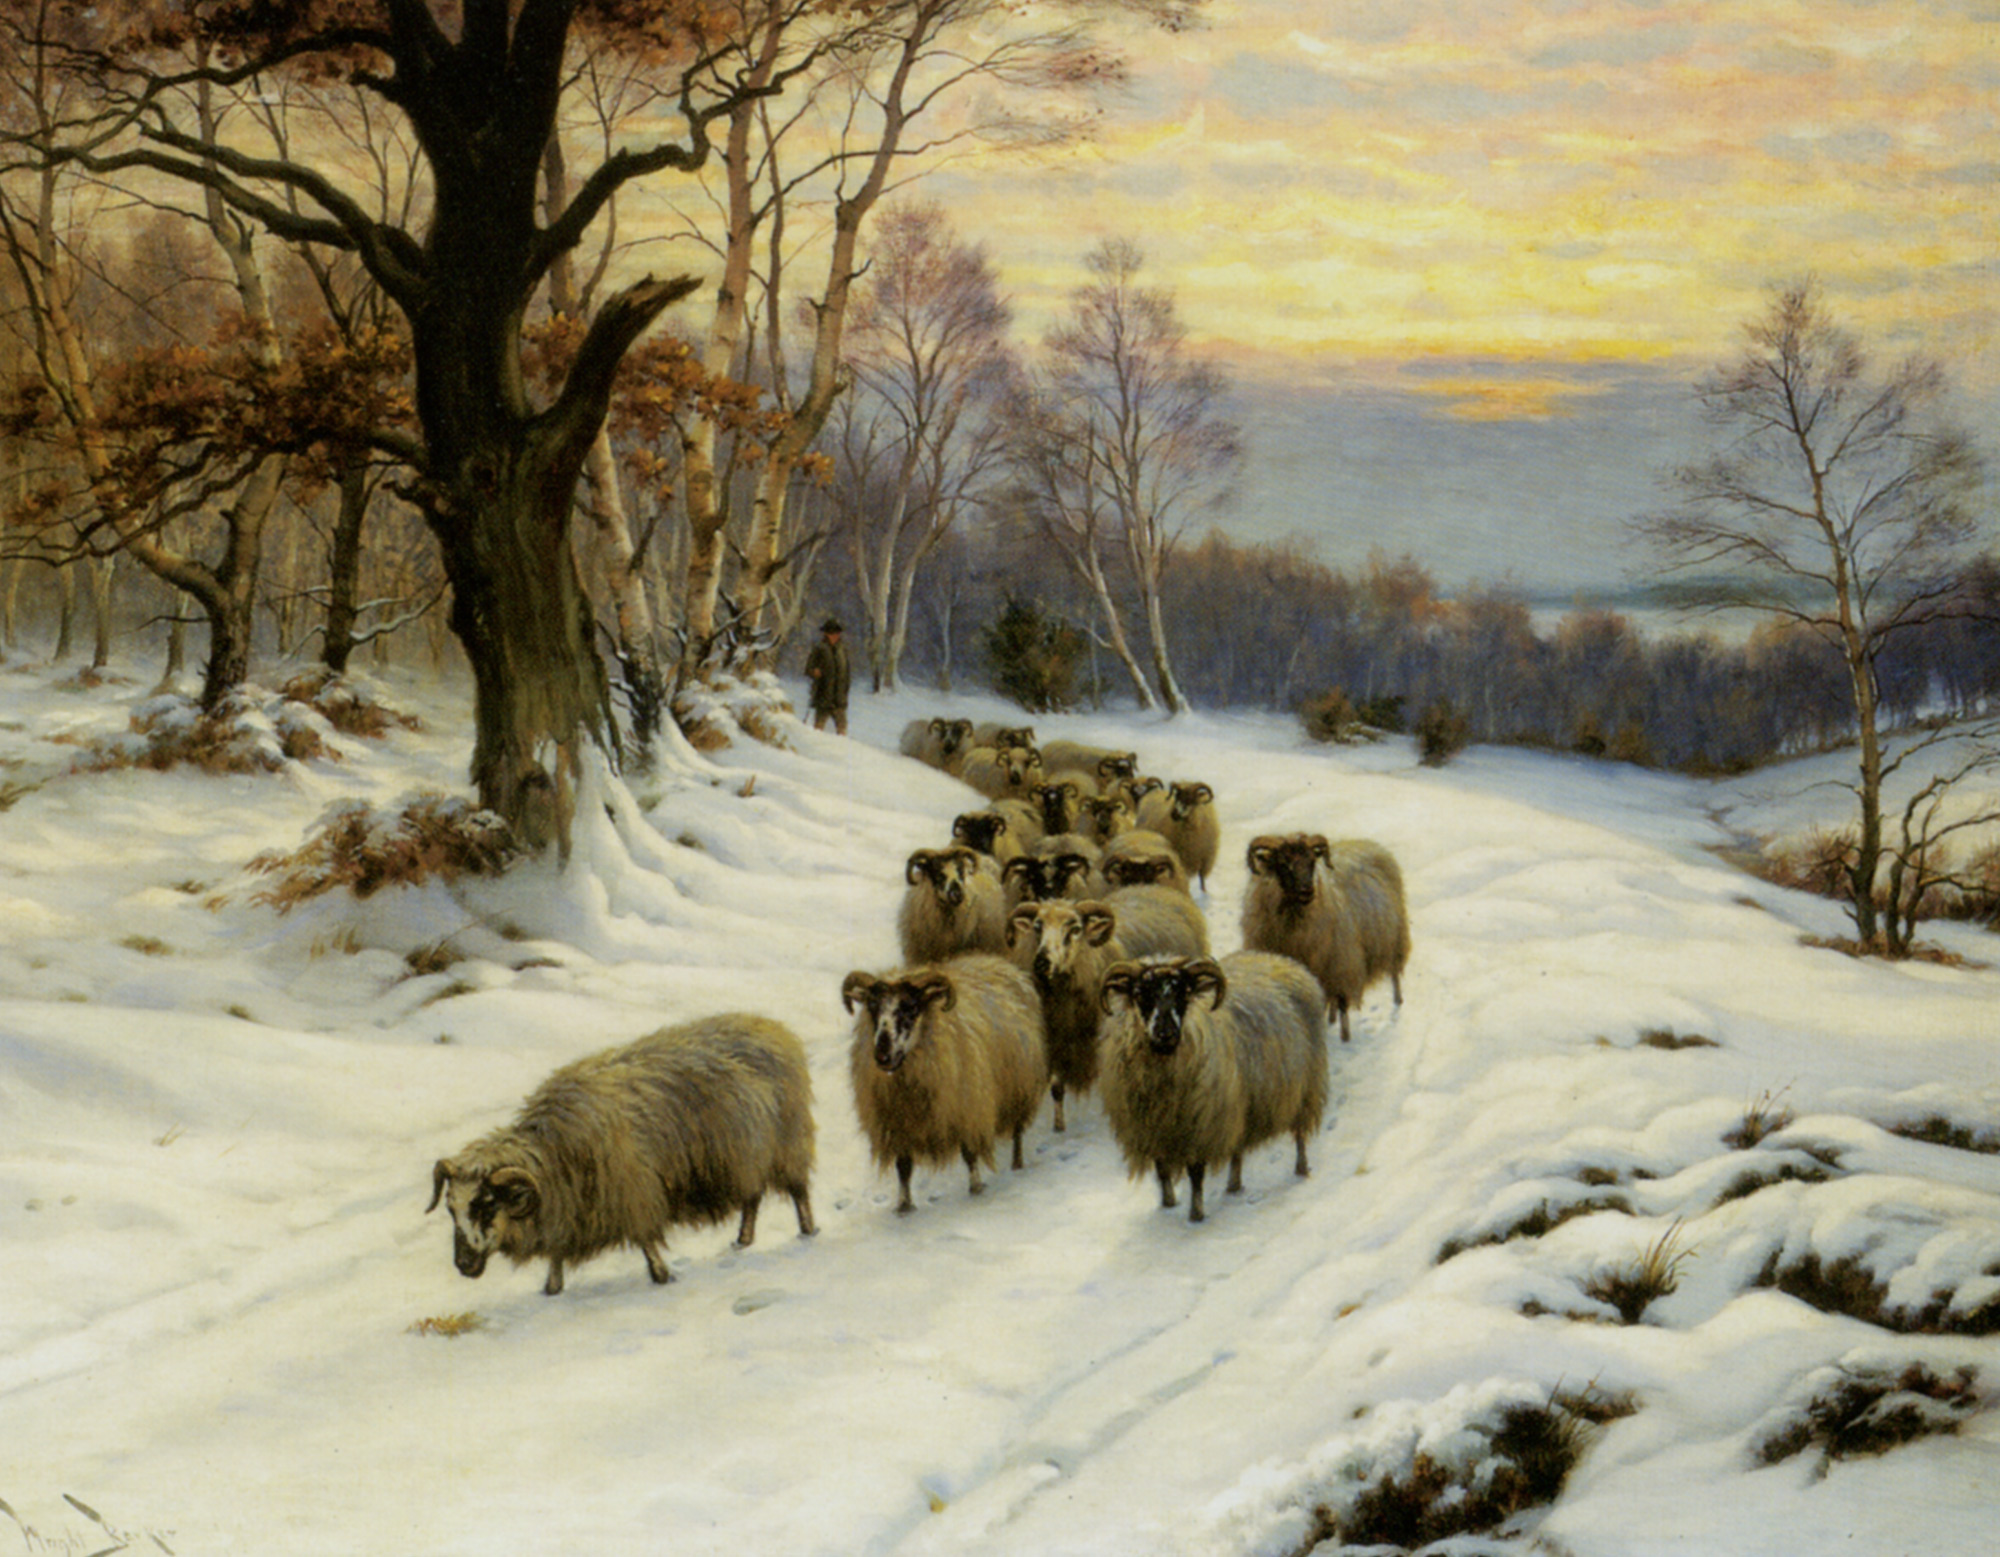 A Shepherd and his Flock on a Path in Winter :: Wright Barker - winter landscapes ôîòî